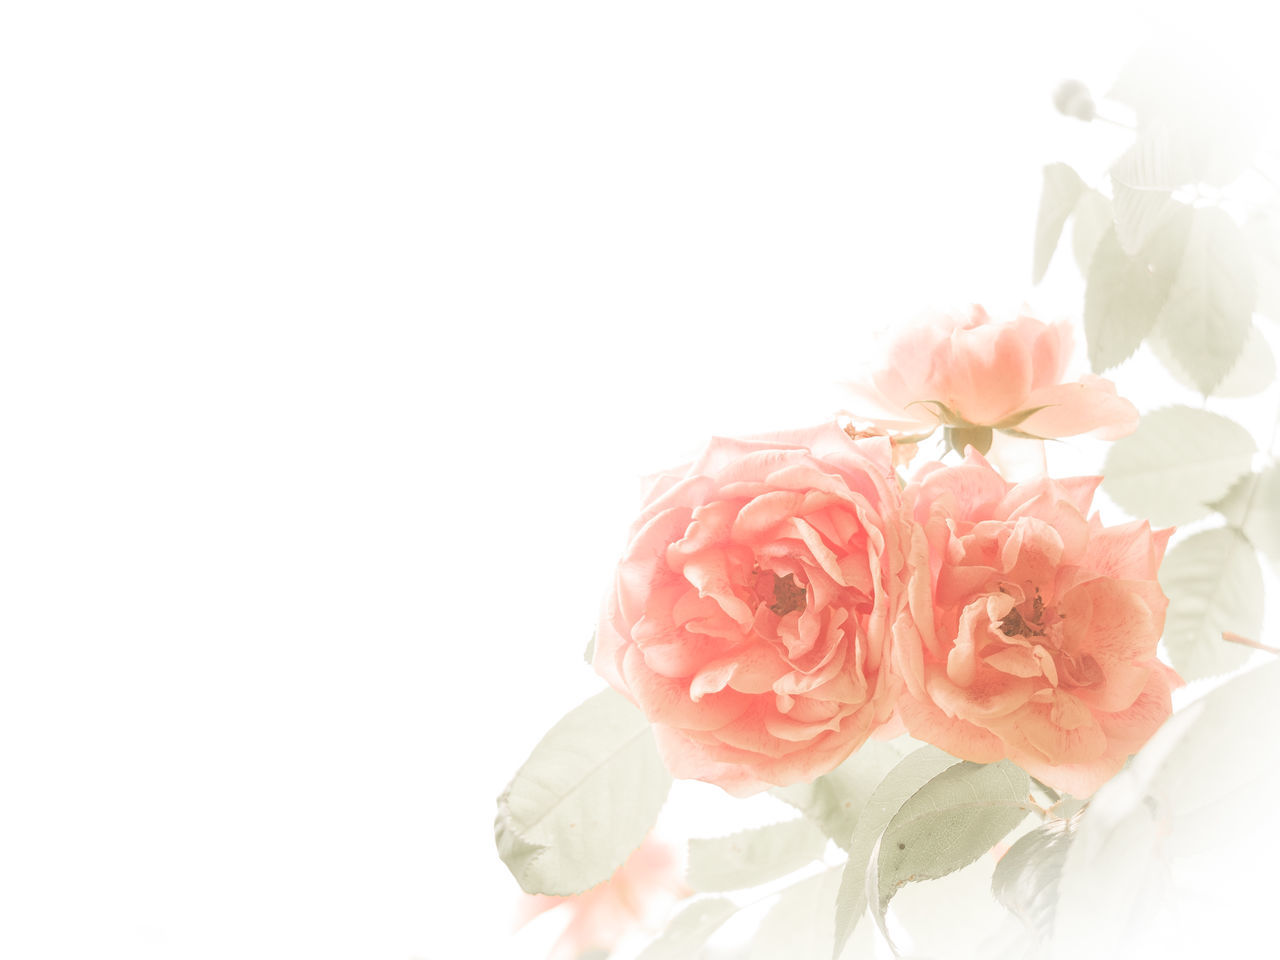 Ich kann auch anders^^: Kitsch 1 Backround Blooming Close-up Copy Space Elégance Flower Flower Head Flowery Fragility Kitschy Pastel Colors Petal Pink Pink Color Romantic Rosé Rose - Flower Softness White Background